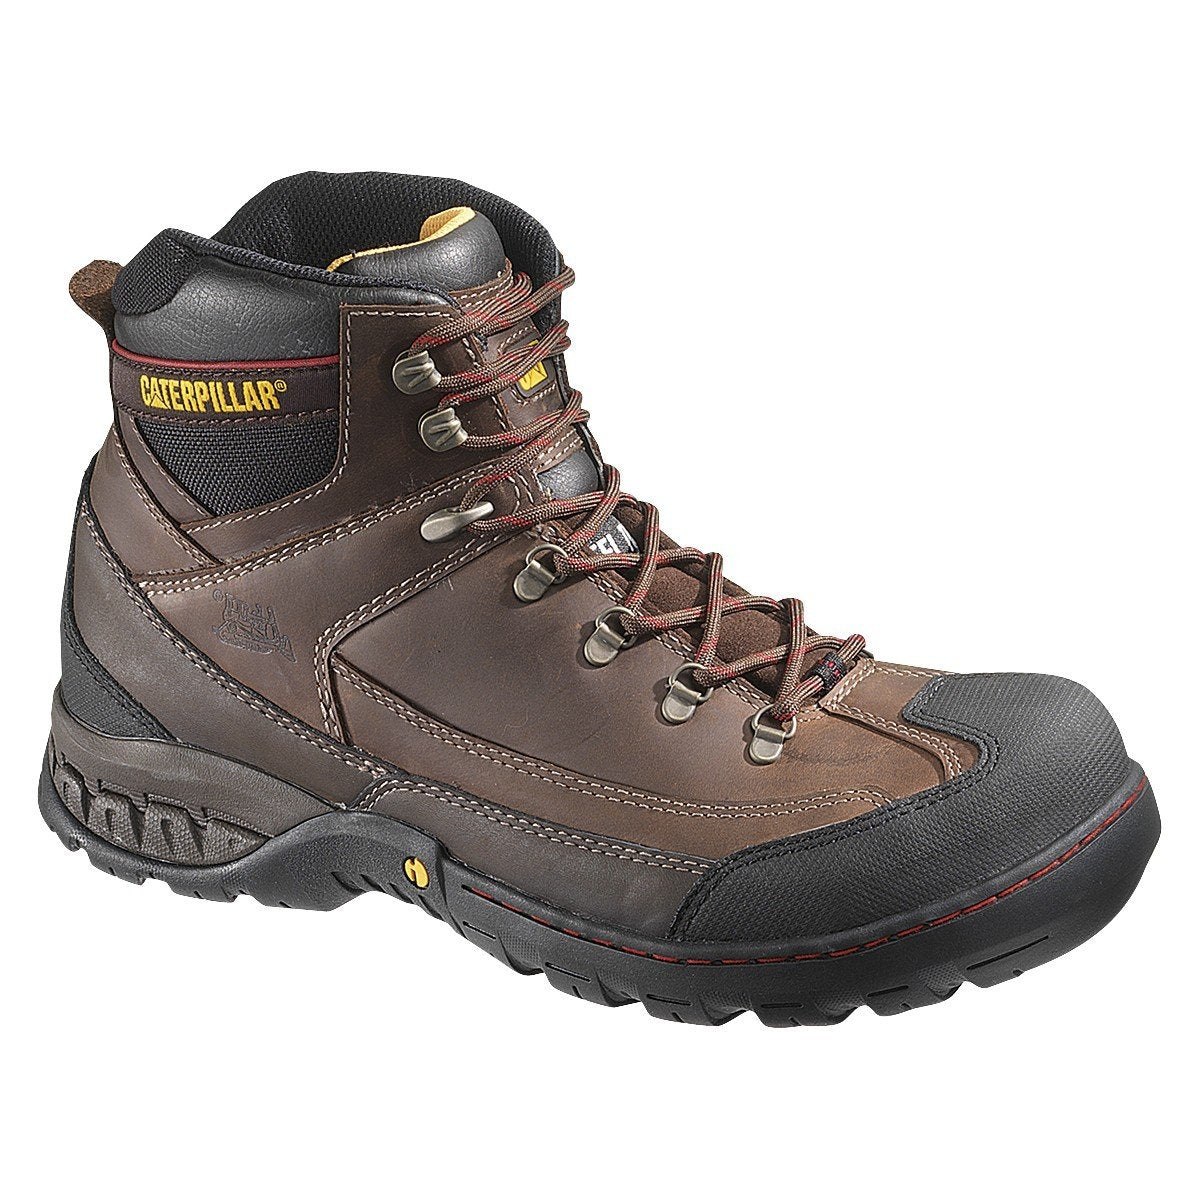 Dynamite Waterproof Steel Toe Work Boot